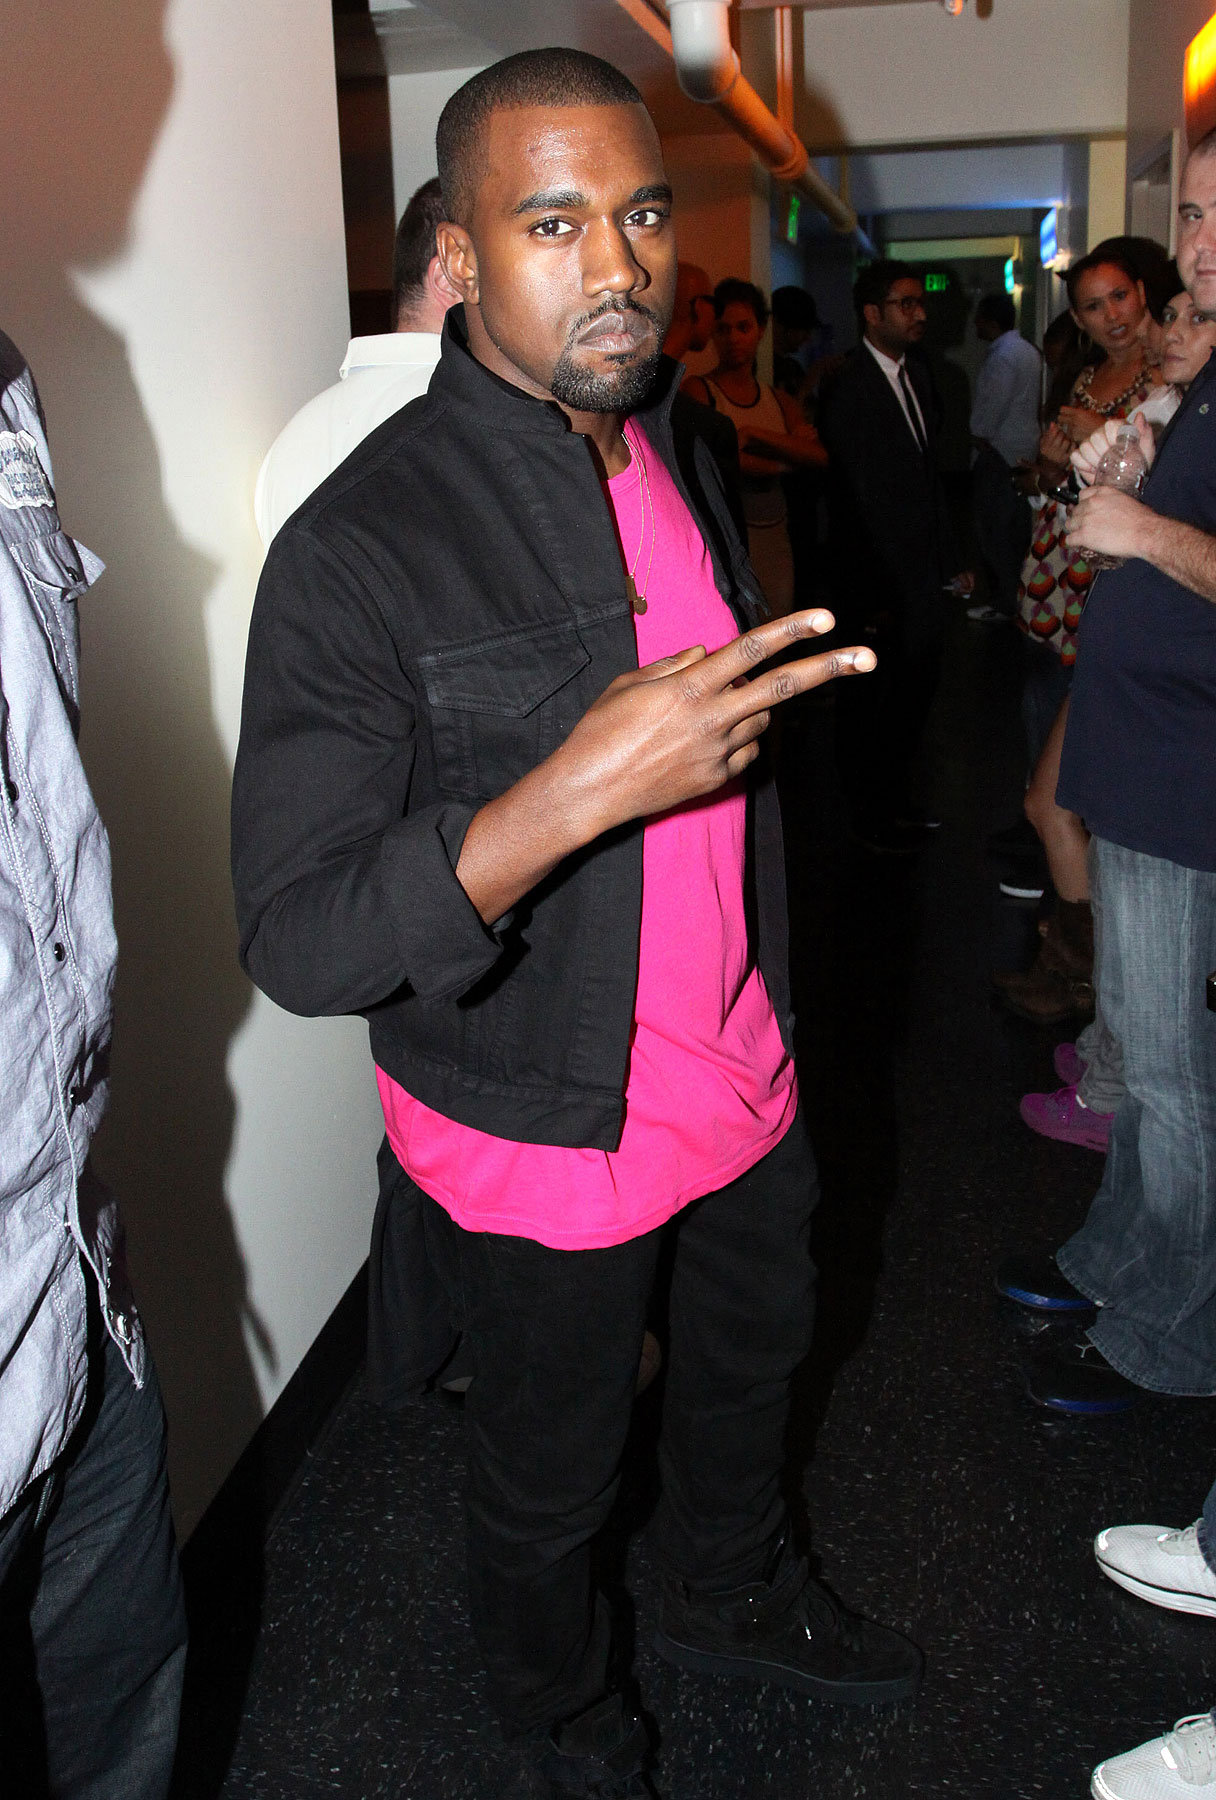 VIDEO: Kanye West Welcomed Back by Los Angeles-photo